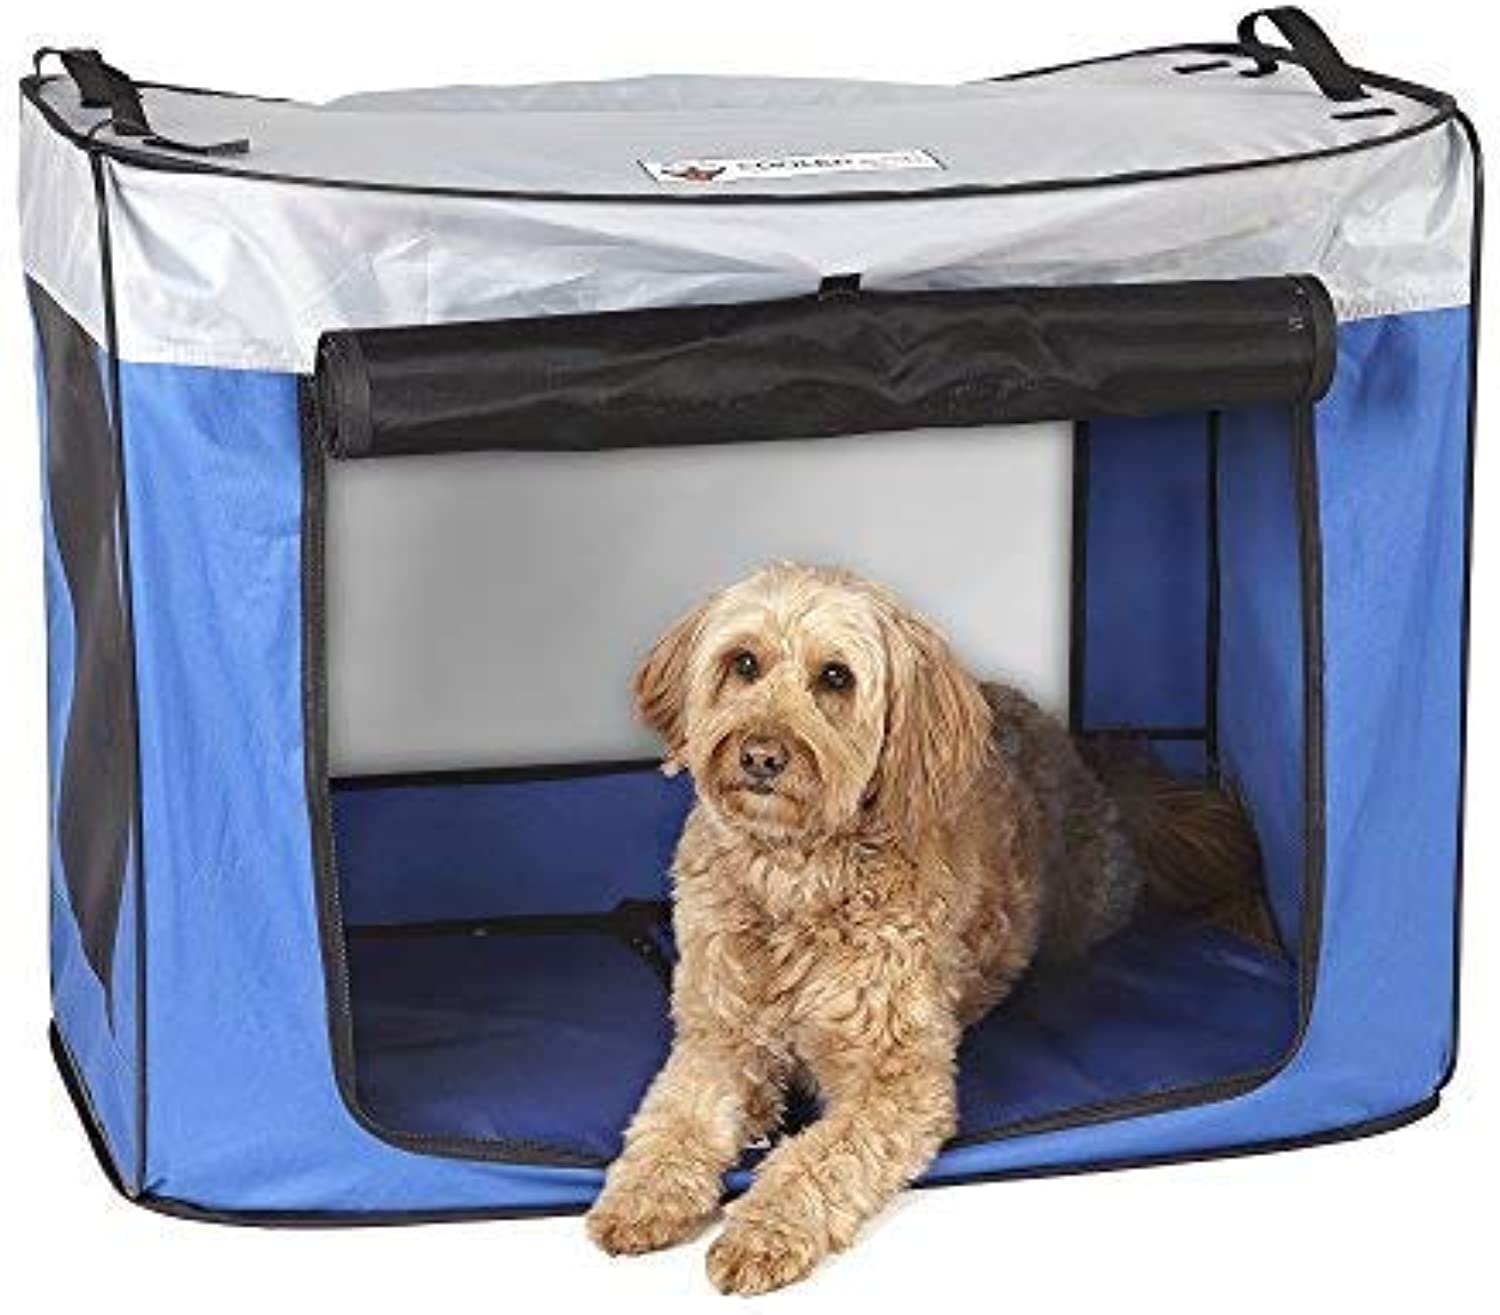 CoolerDog PupUp Pop Up Dog Shade Tent Kennel, Portable Sun Predection for Your Pet